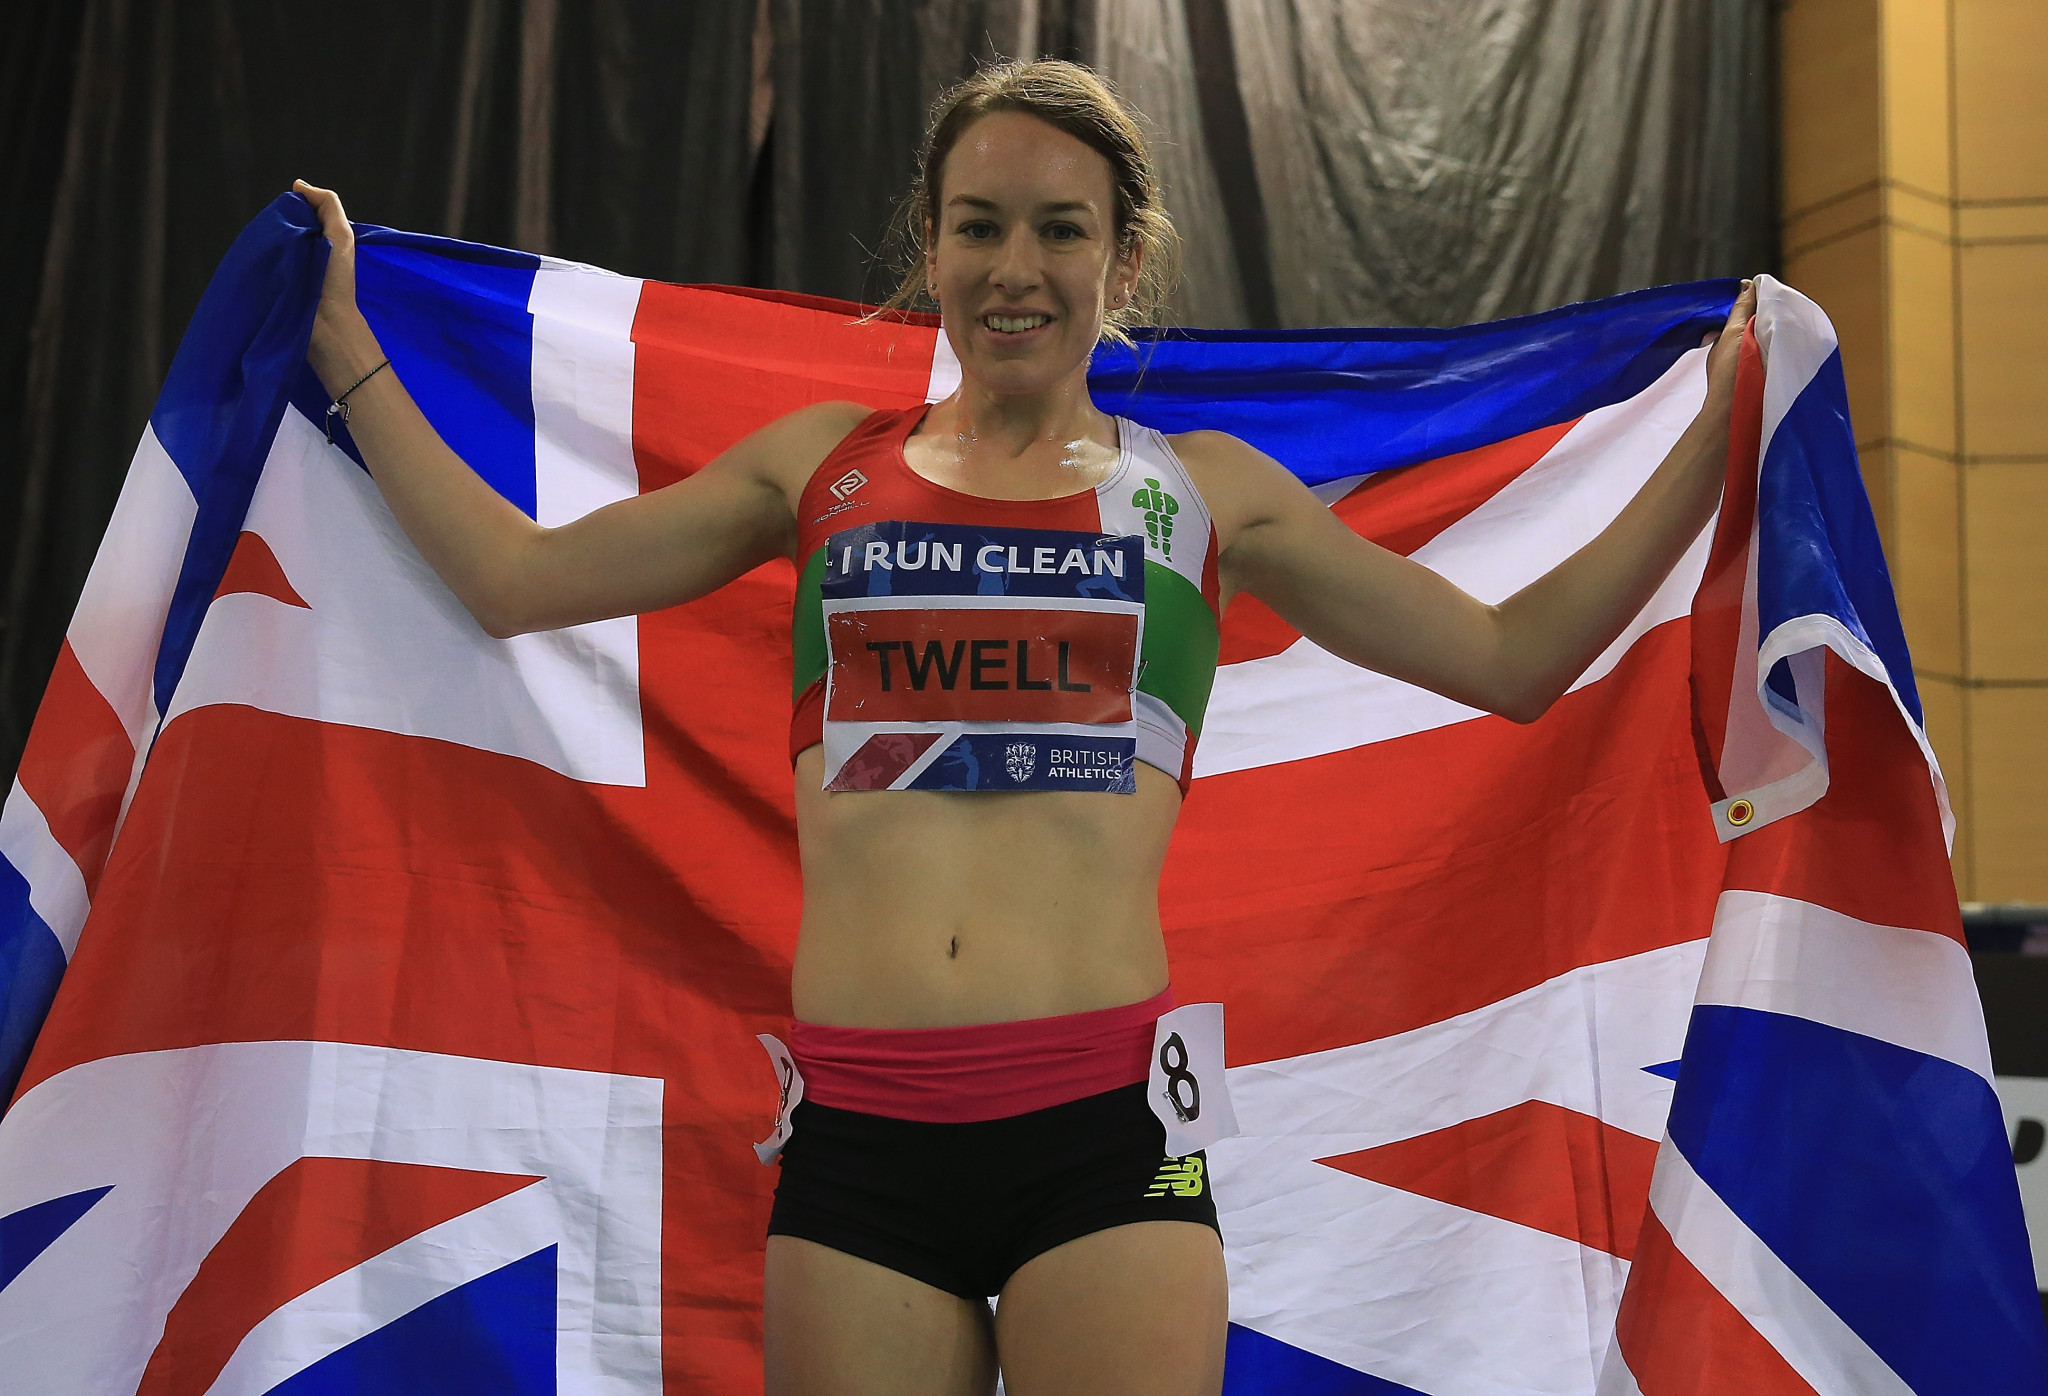 Steph Twell has been selected as one of Britain's marathon representatives at Tokyo 2020, and is set to compete in her third Olympics ©Getty Images